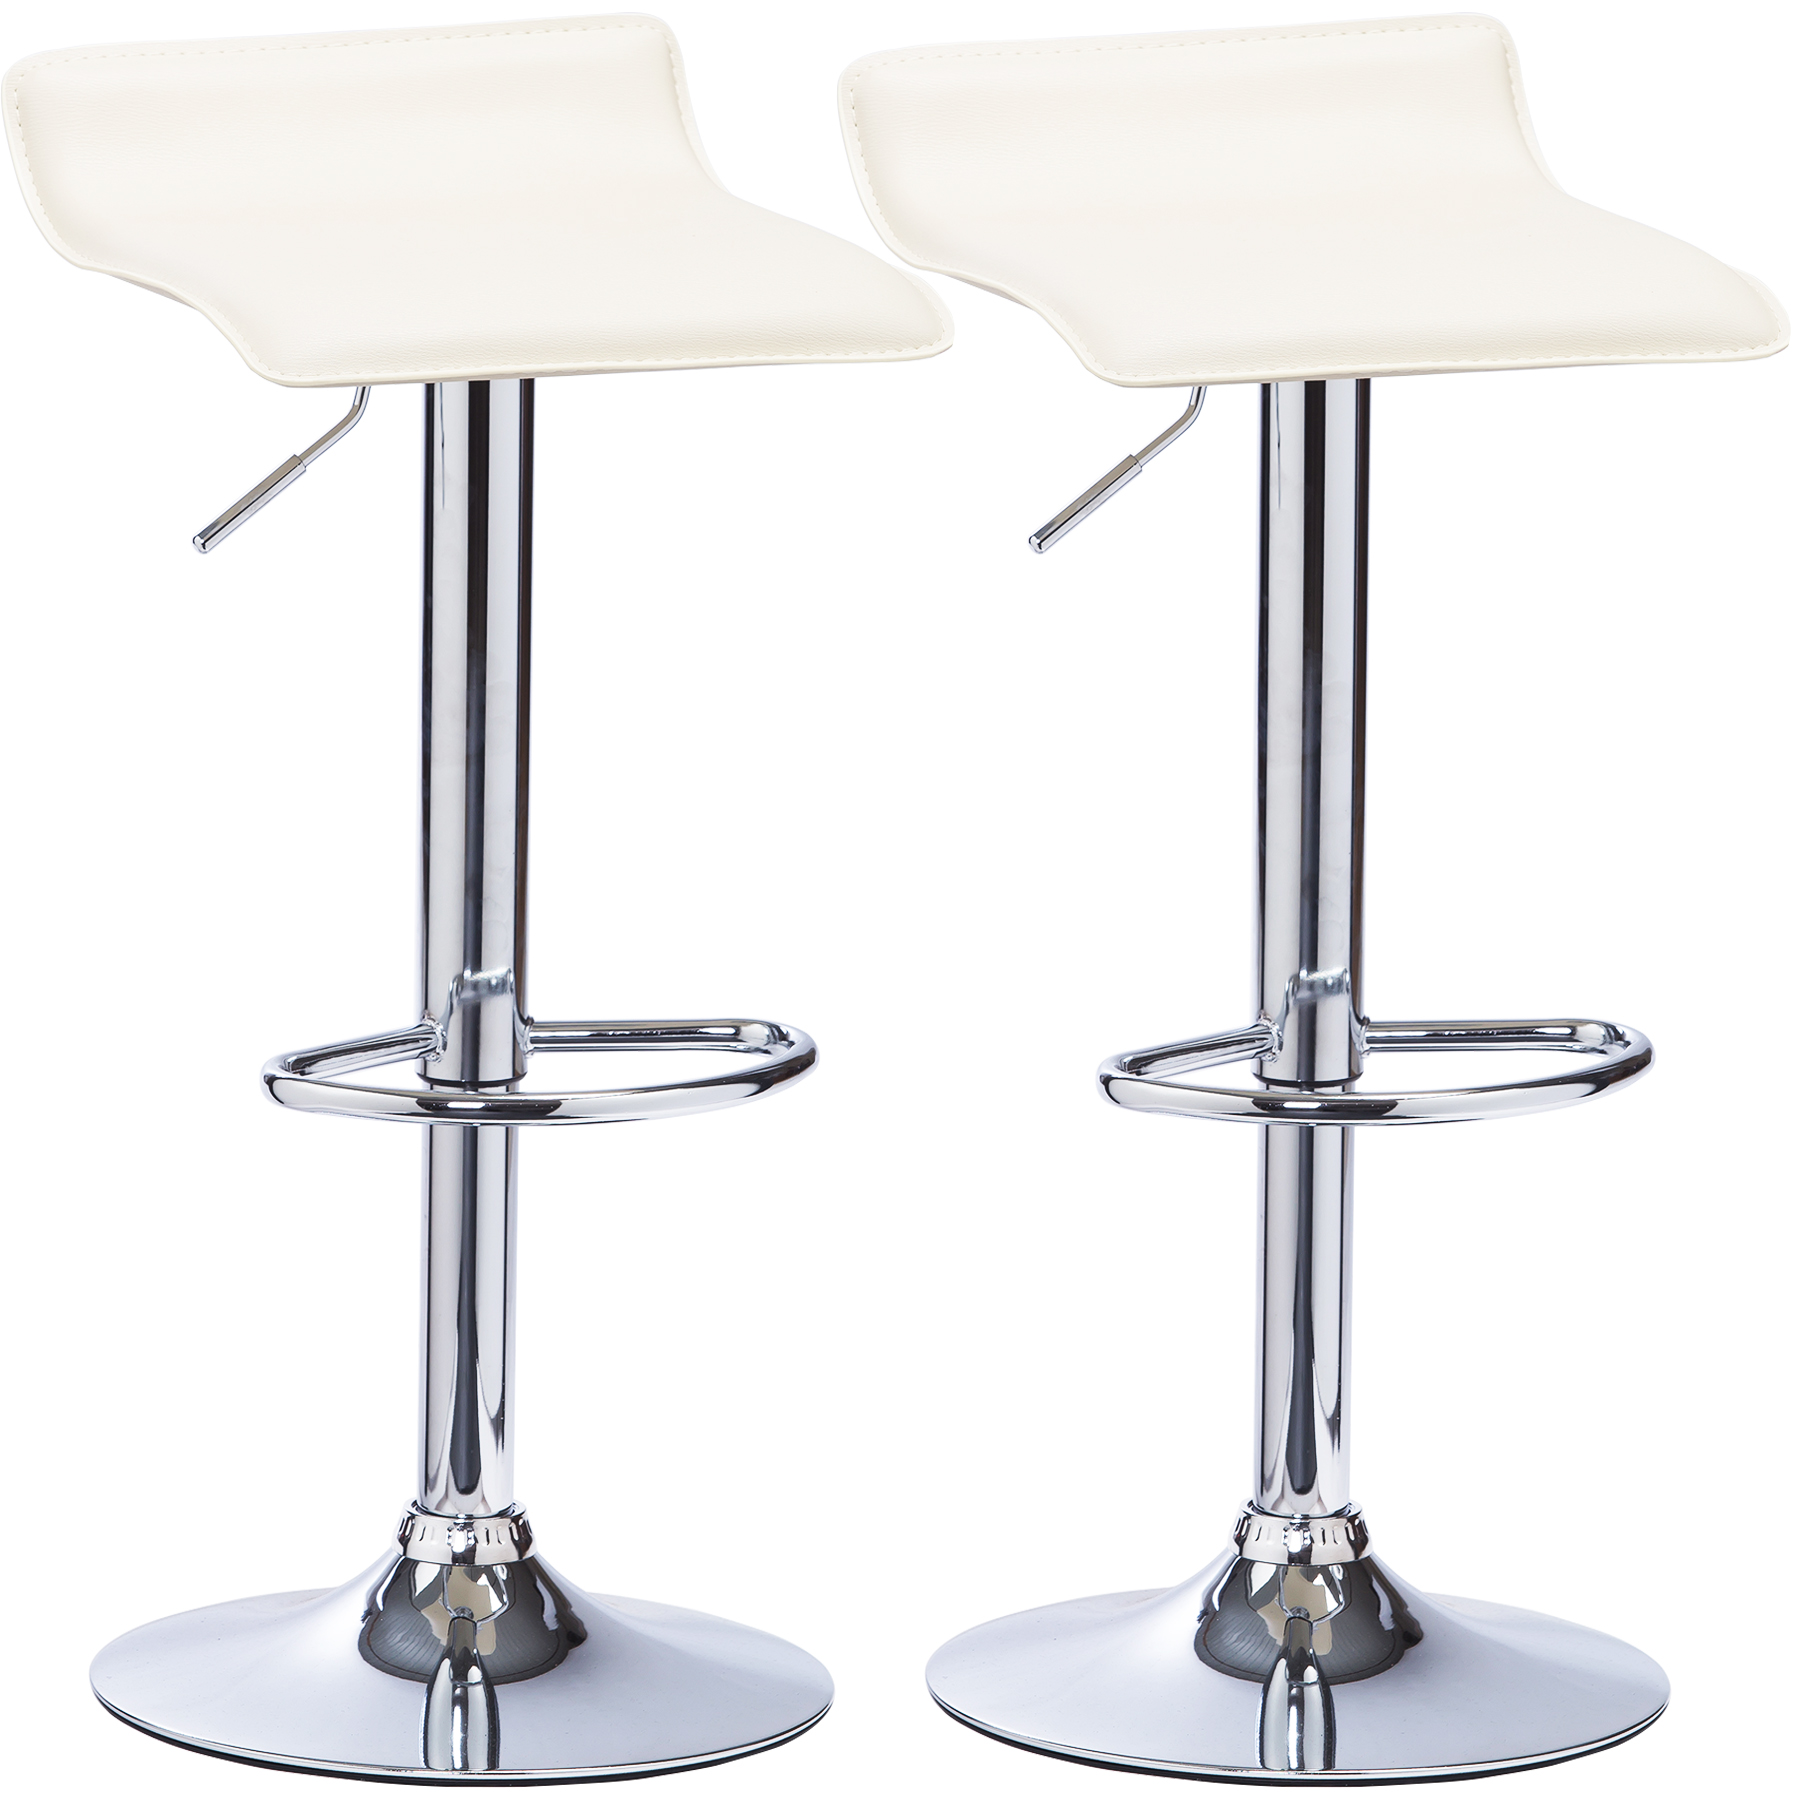 Swivel Chairs For Kitchen Bar Stools Set Of 2 Swivel Kitchen Breakfast Stools Chair